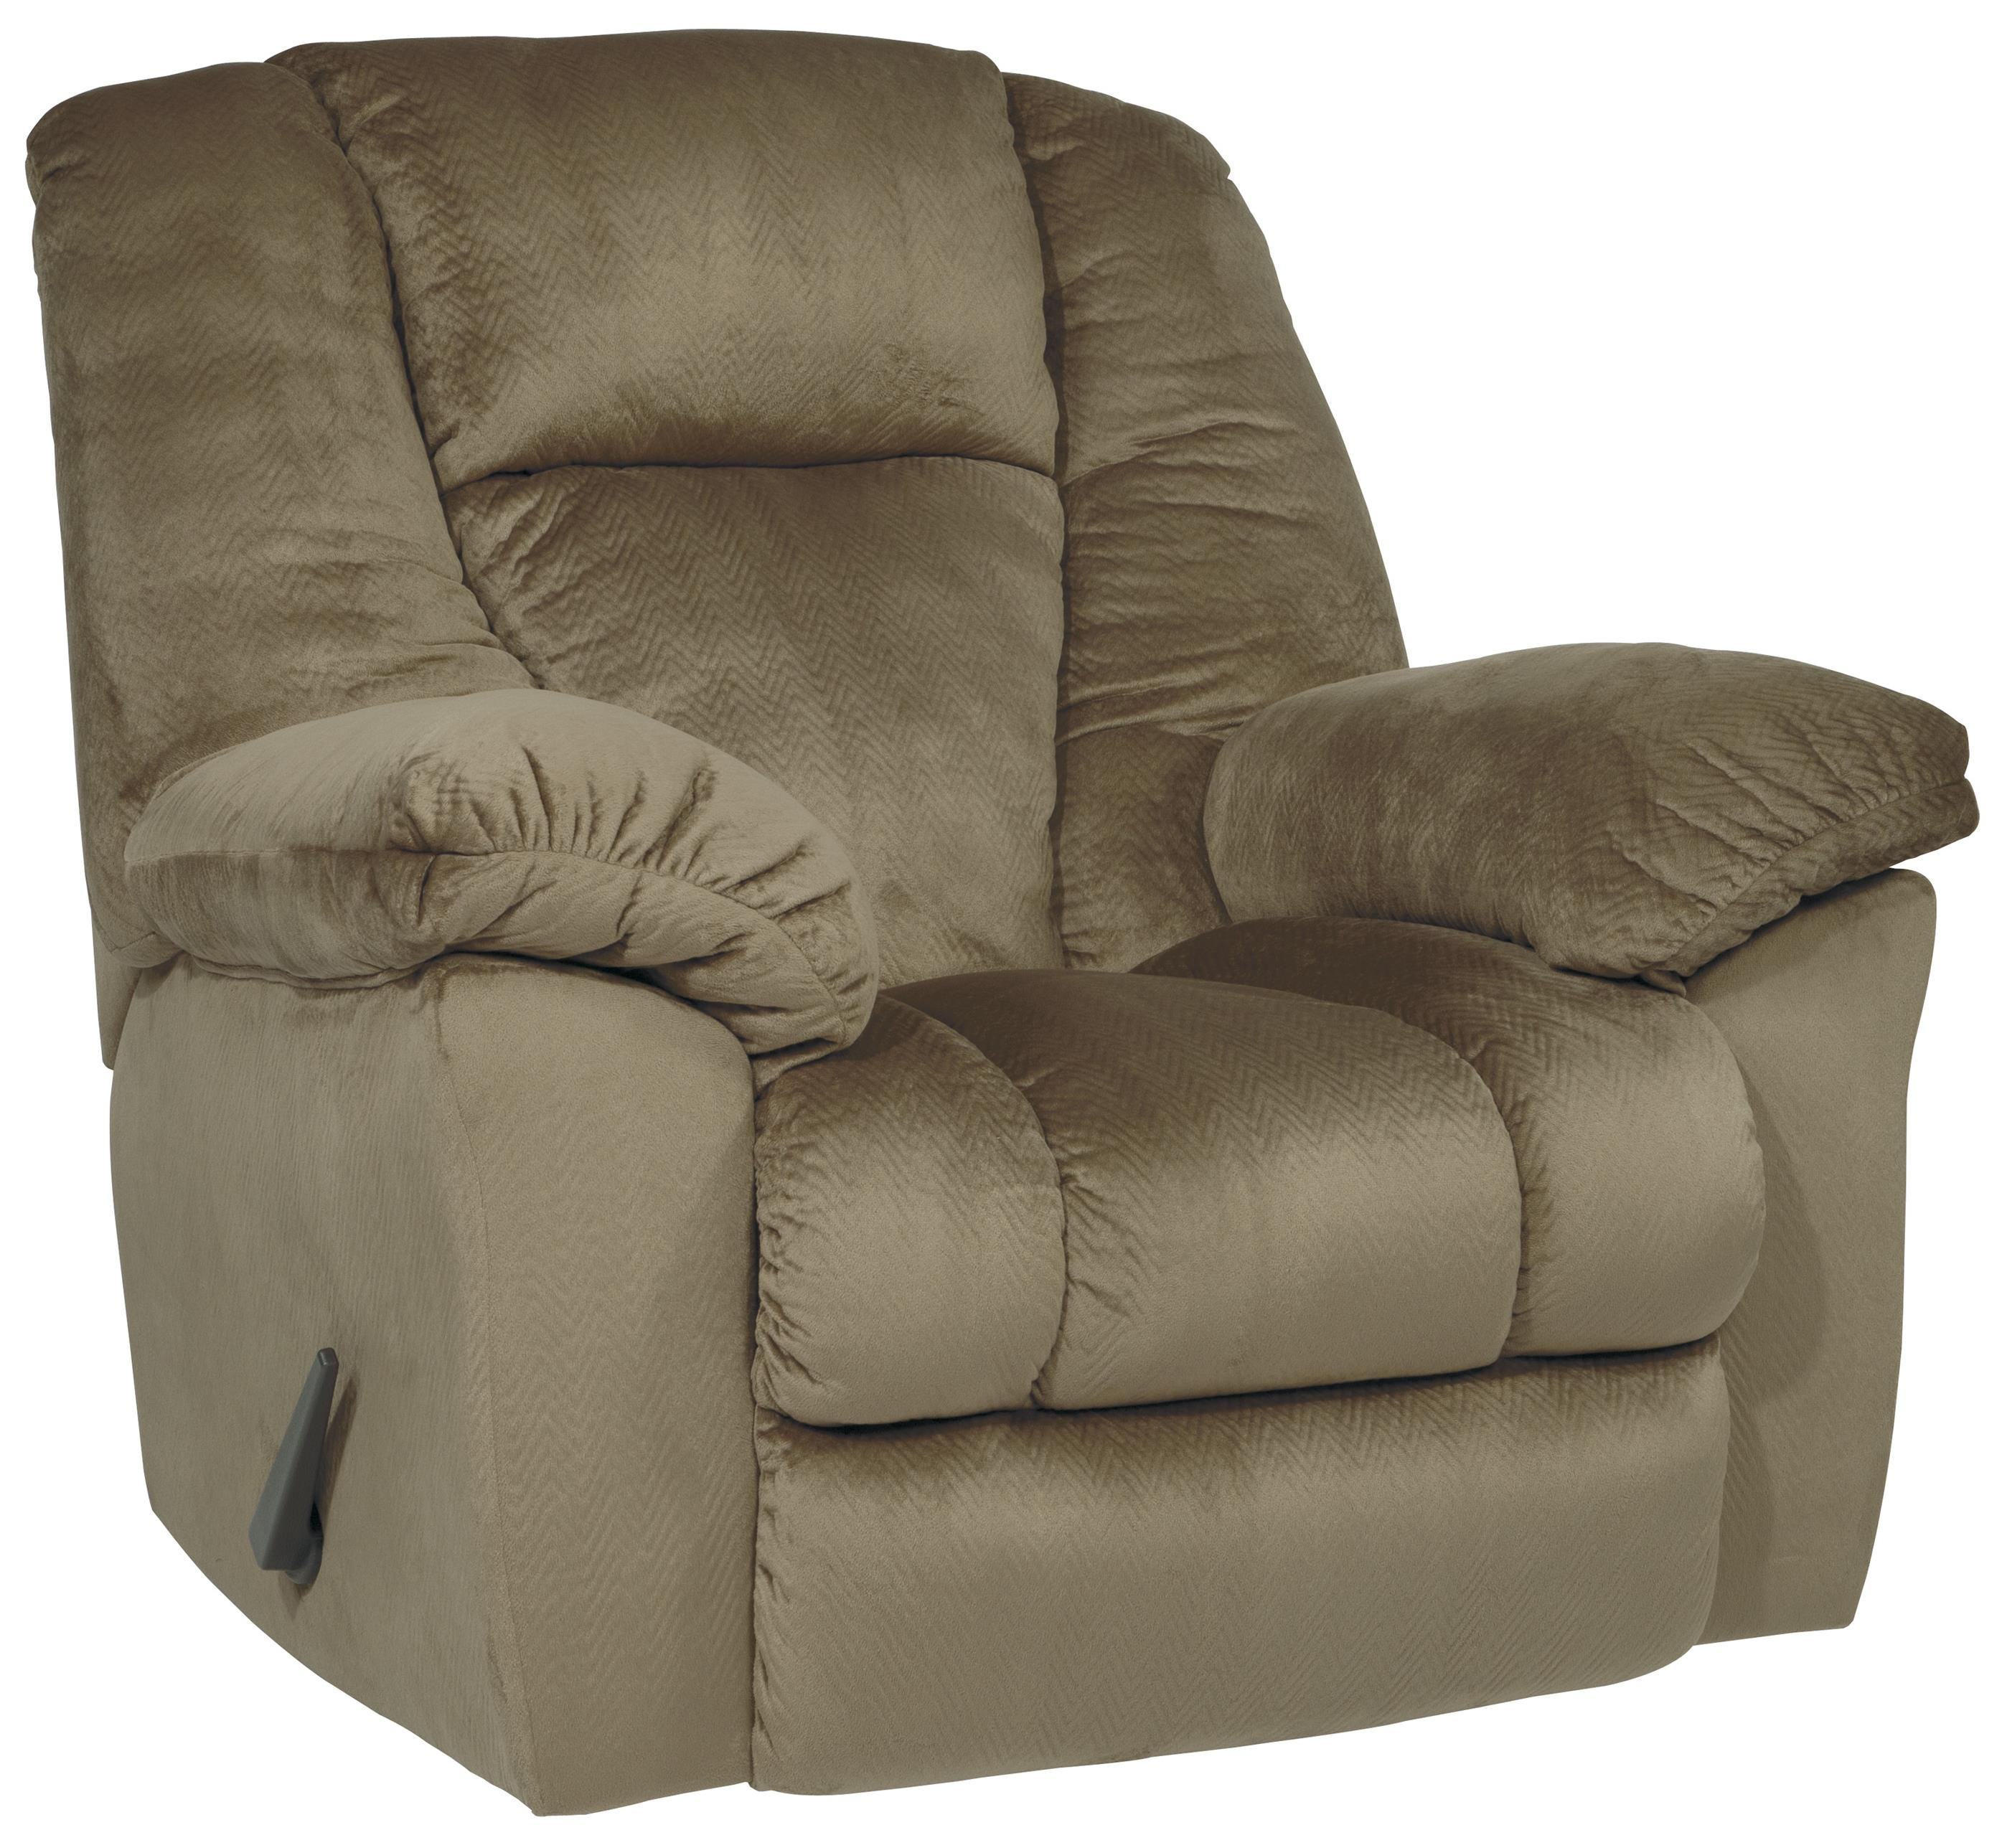 Signature Design by Ashley Darden Rocker Recliner - Item Number: 2650125